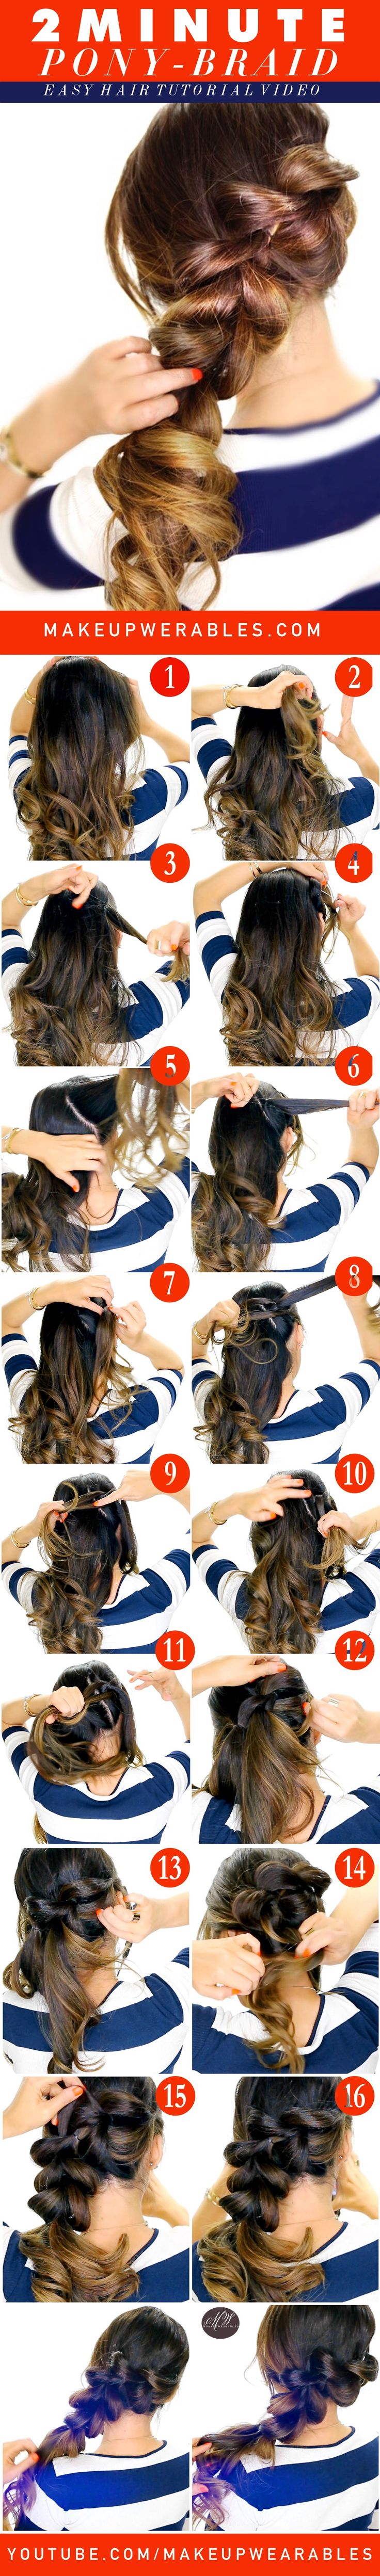 2-Minute Ponytail Braid Tutorial - Quick & Easy Hairstyles